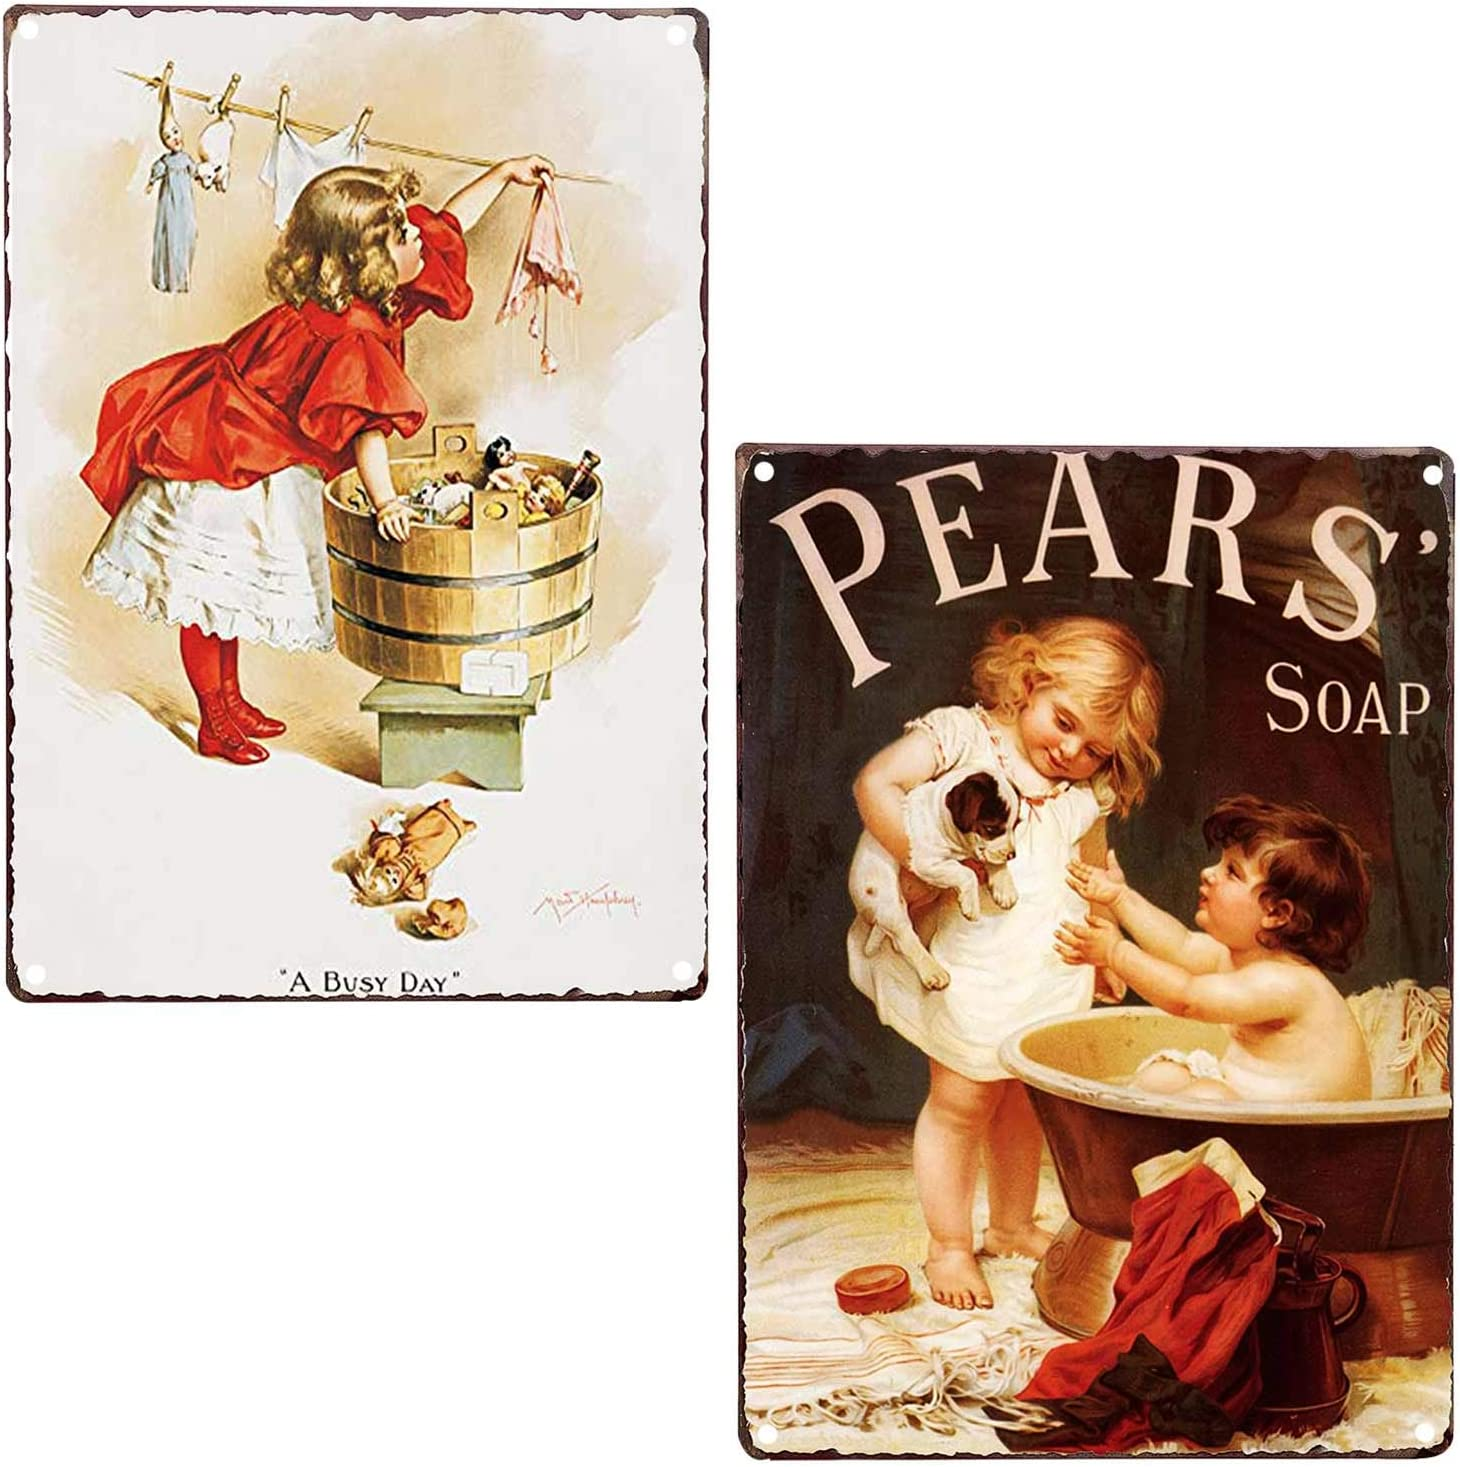 LIPTOR Novelty Girl Washing Clothes Pears Soap Vintage Bath Bathroom Laundry Room Decor Country Wall Home Decor Art Signs 2Pcs-8X12Inch